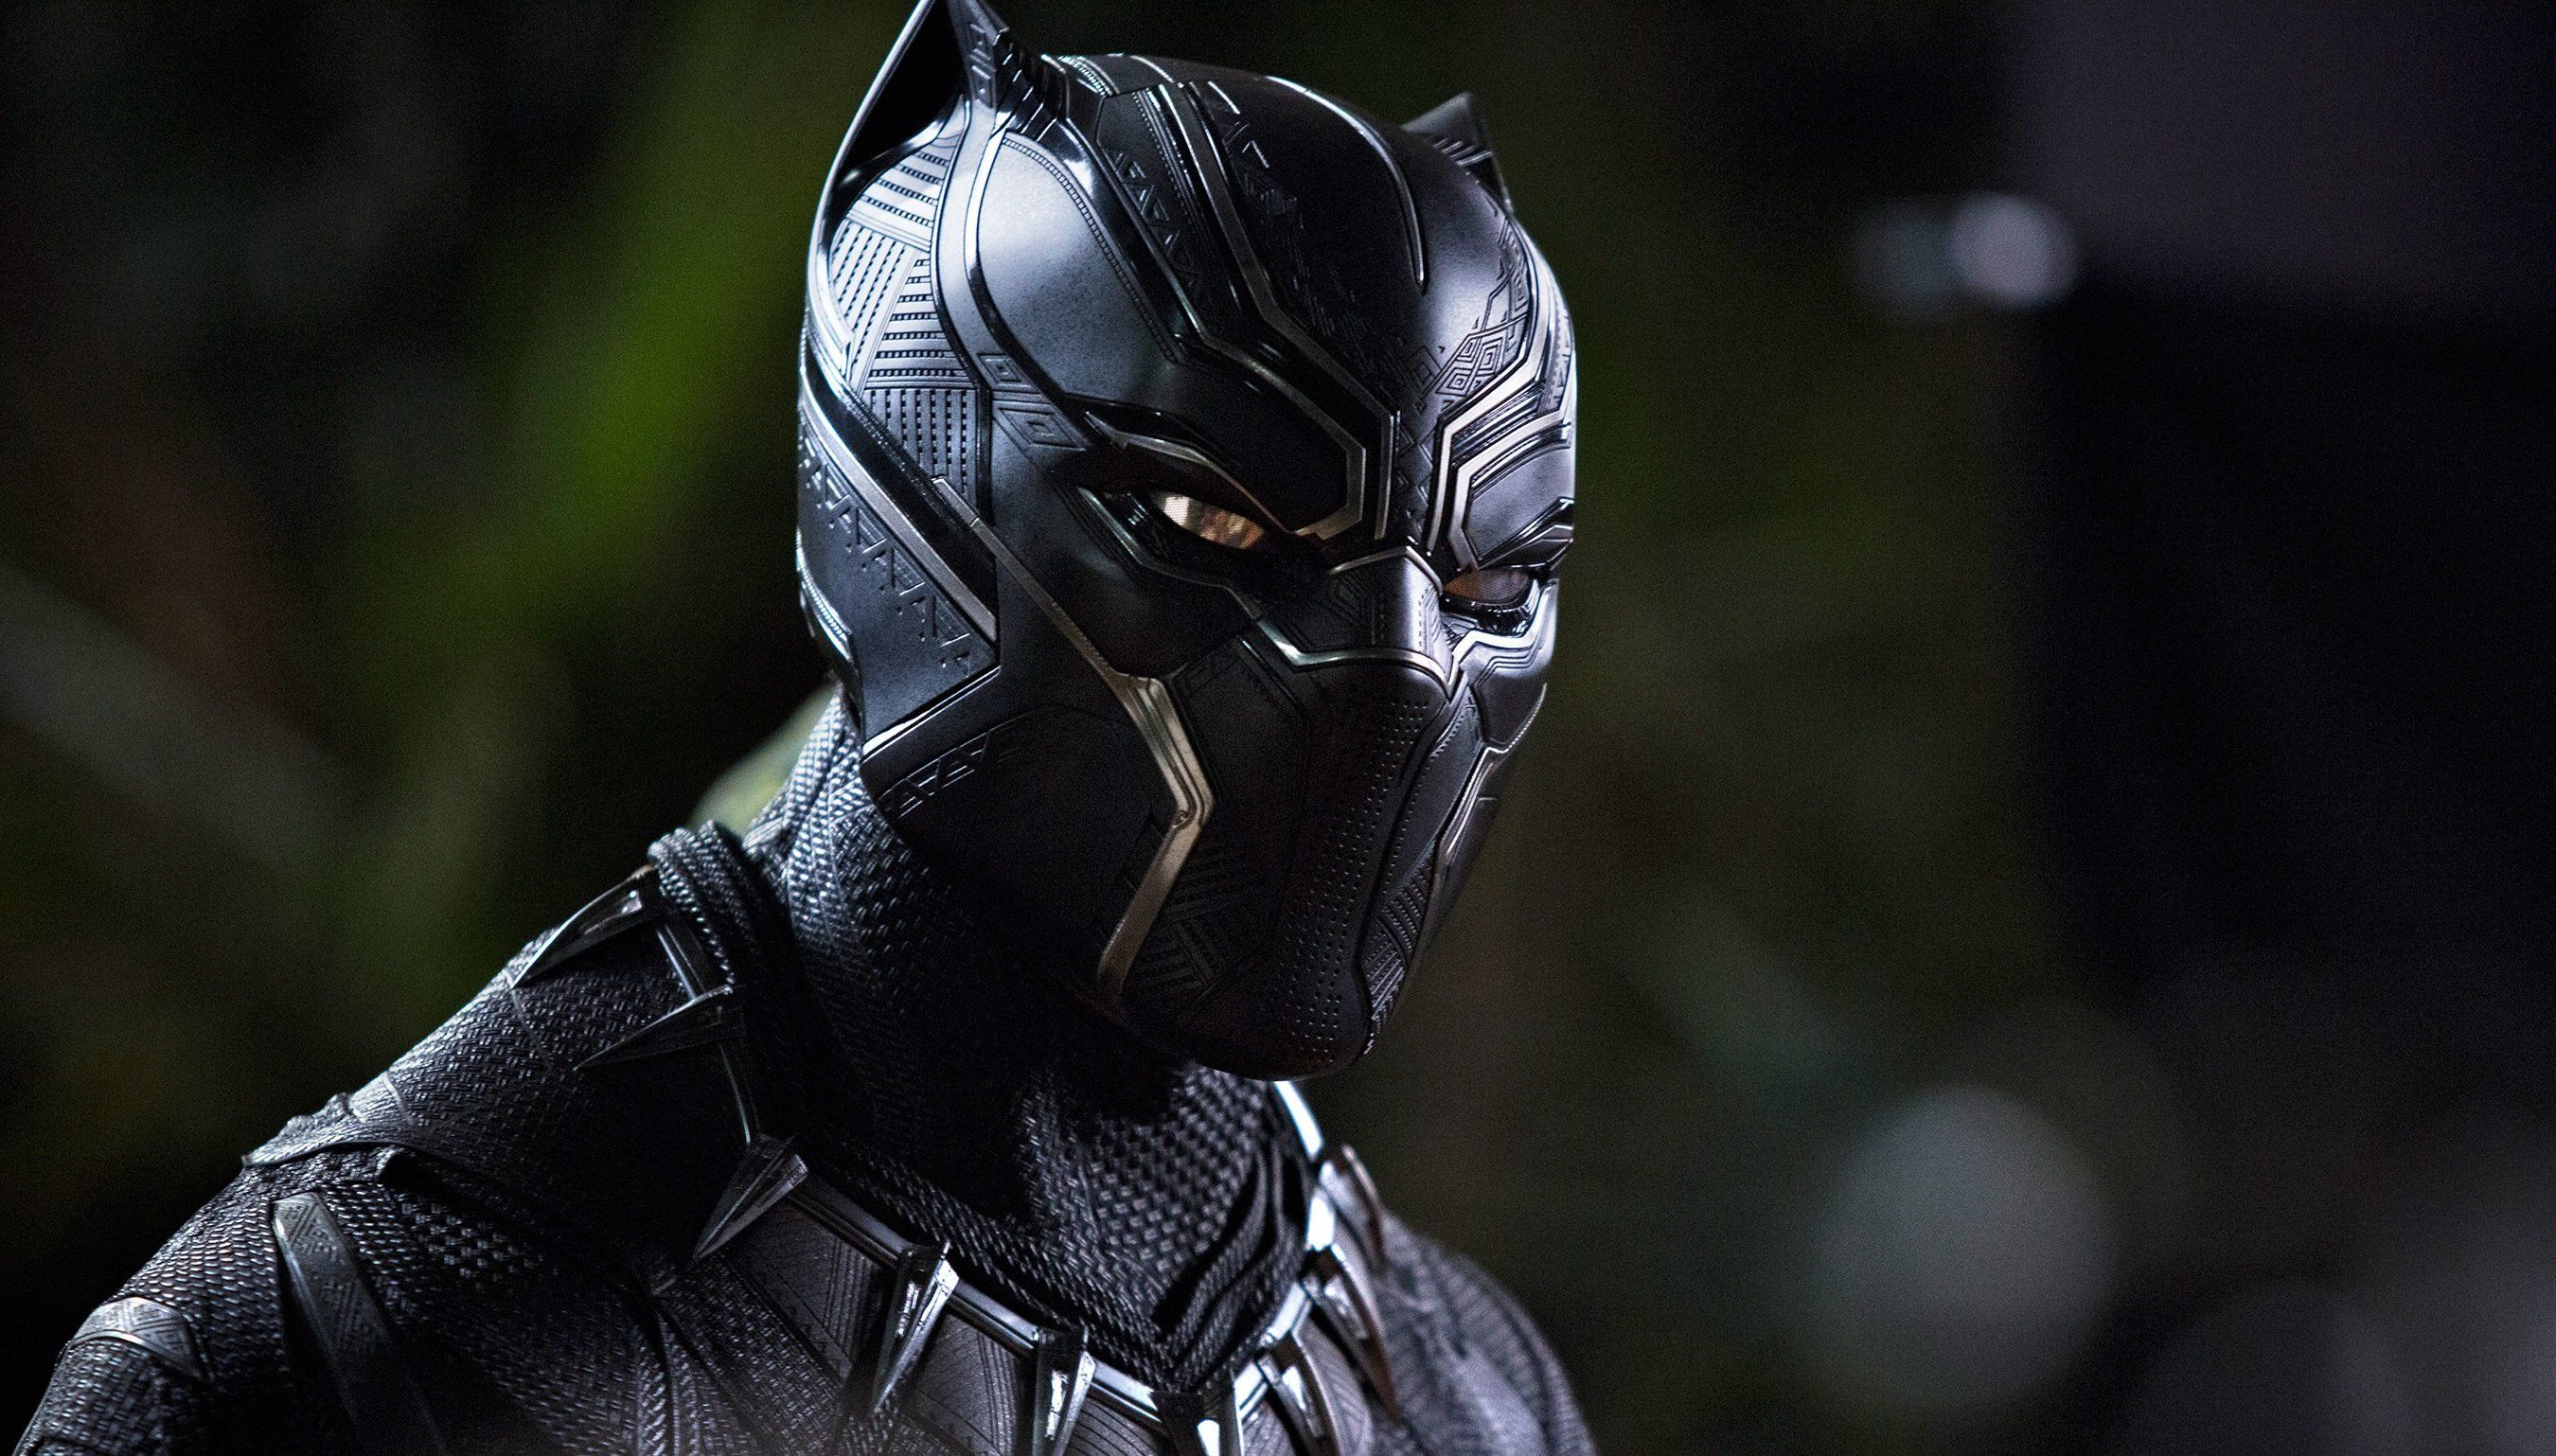 'Black Panther' Appears Unstoppable As It Roars Past $700